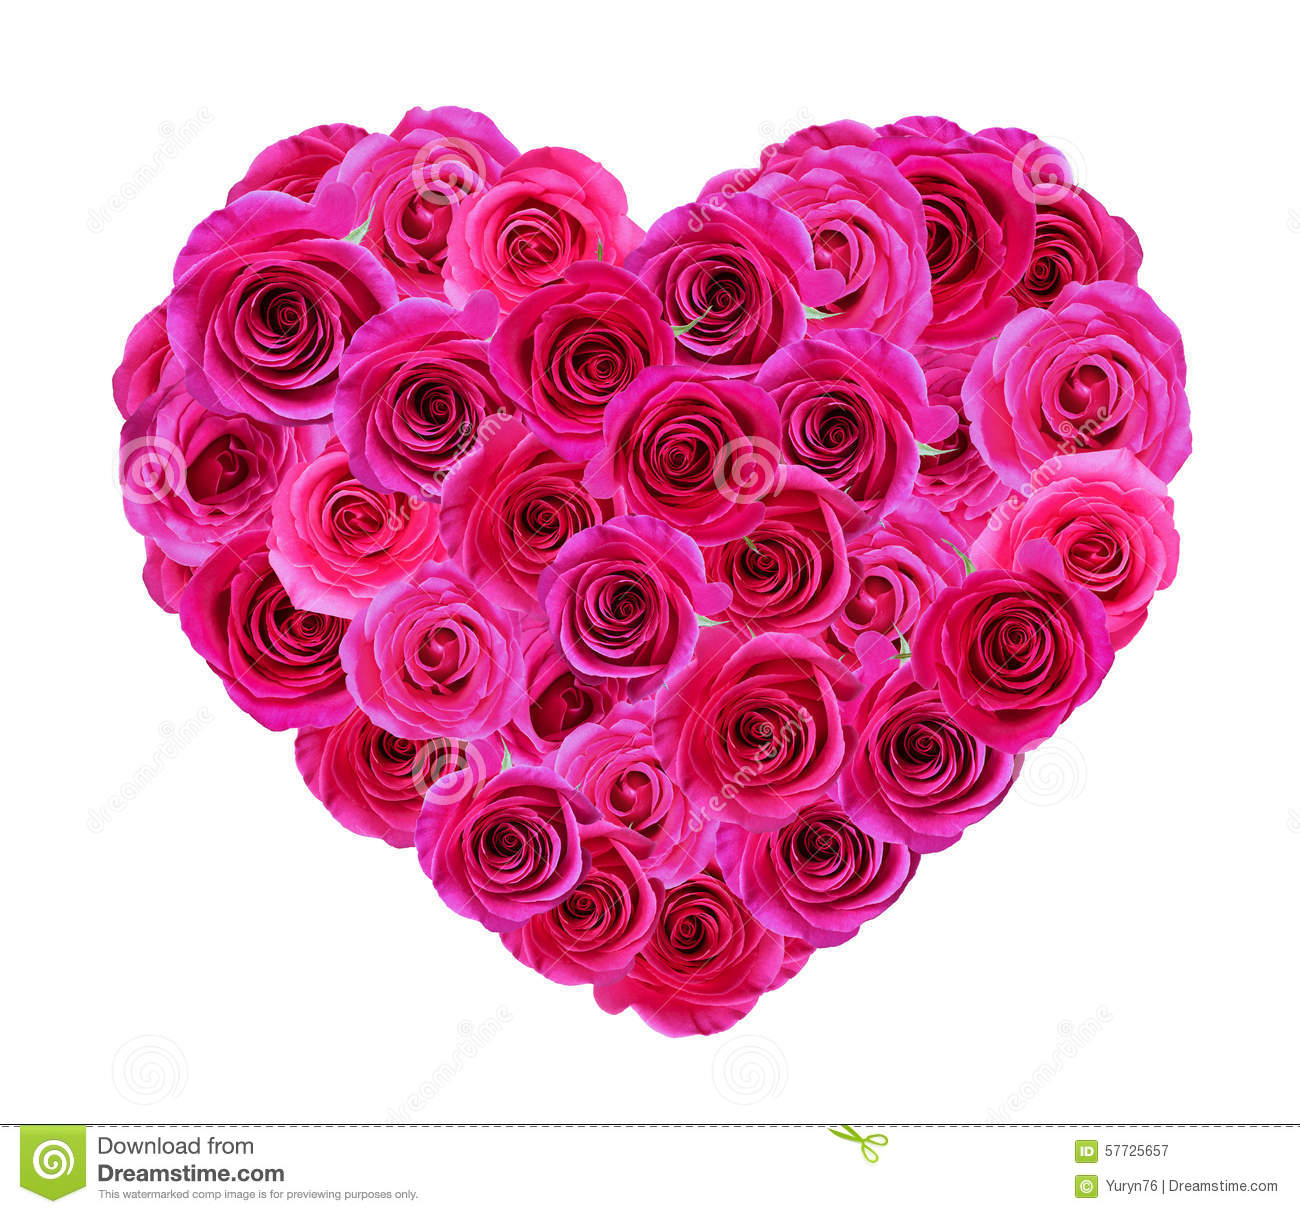 Heart of roses stock image image of love flower romantic 57725657 heart rose red love rose flower shape white isolated petal nature romantic bouquet floral fresh bunch present background beautiful decoration symbol blossom izmirmasajfo